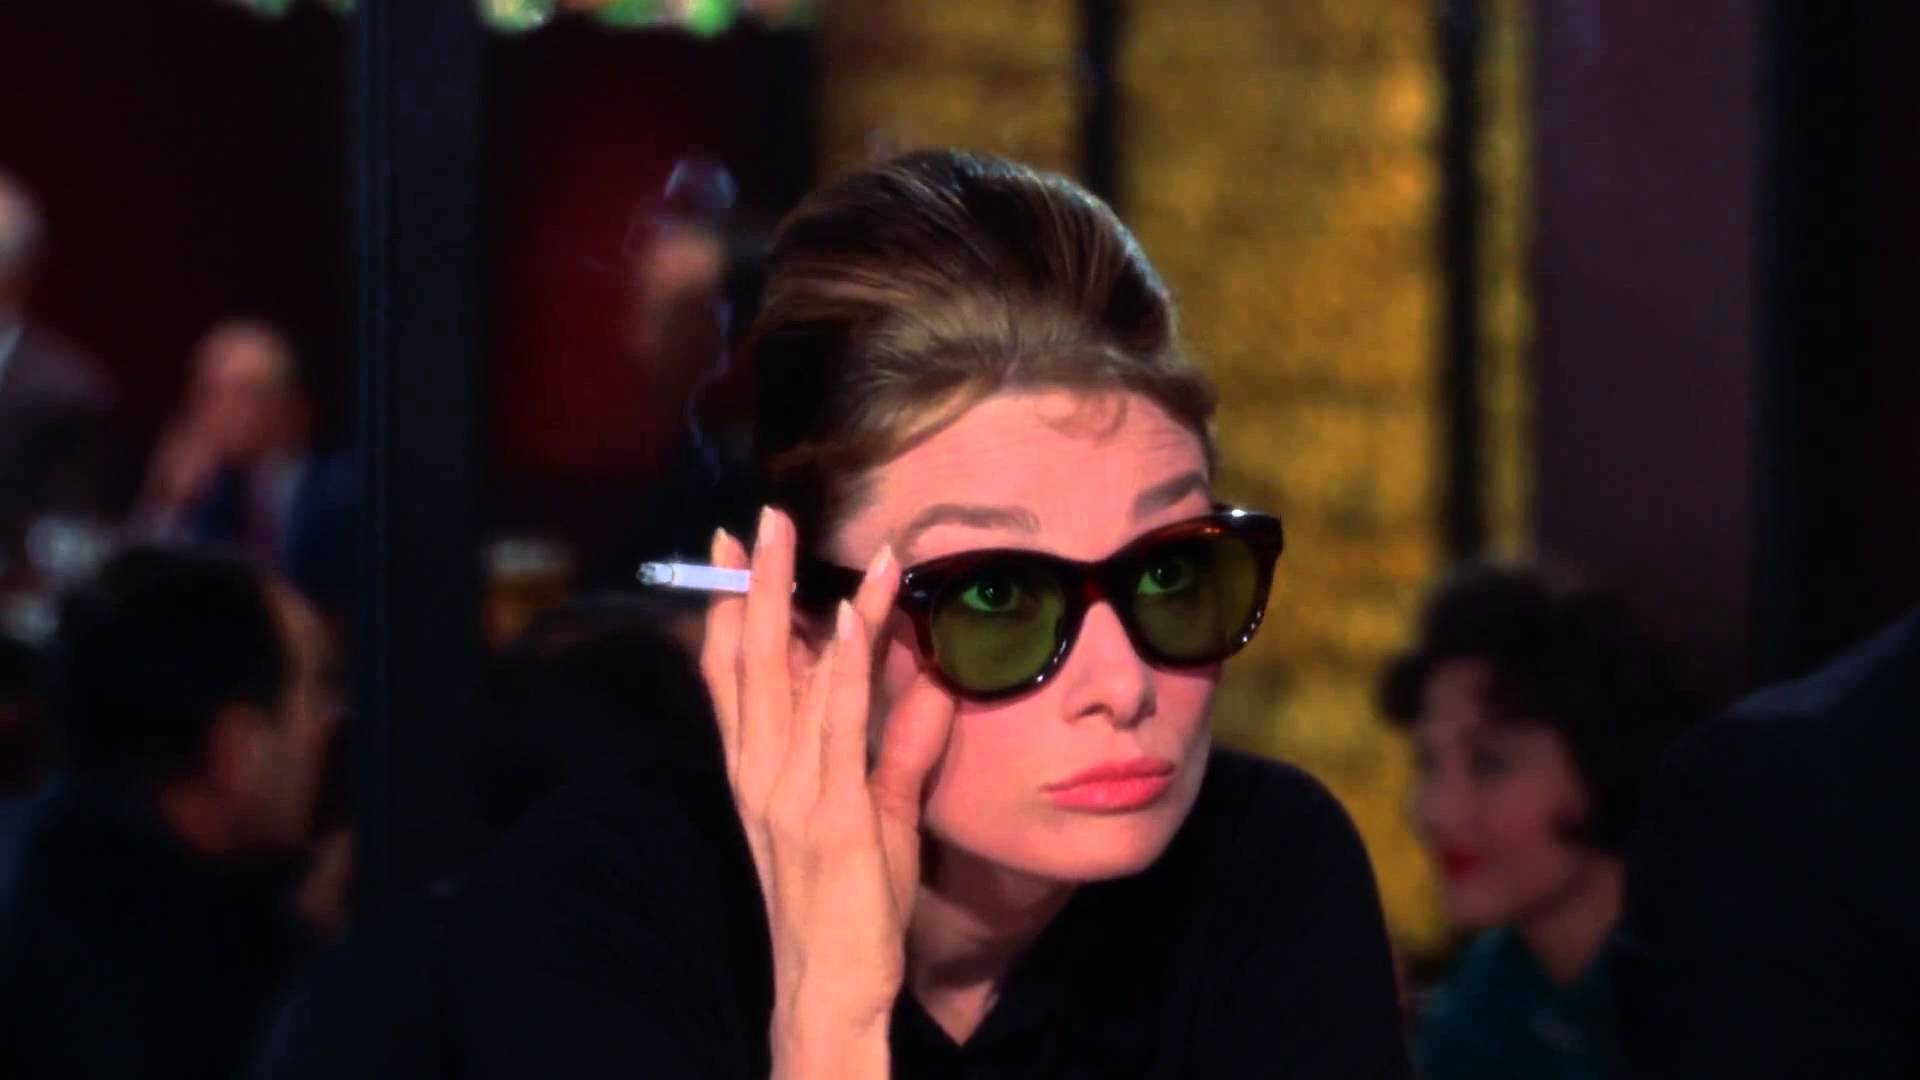 Breakfast at Tiffany's Theme Song | Movie Theme Songs & TV ...